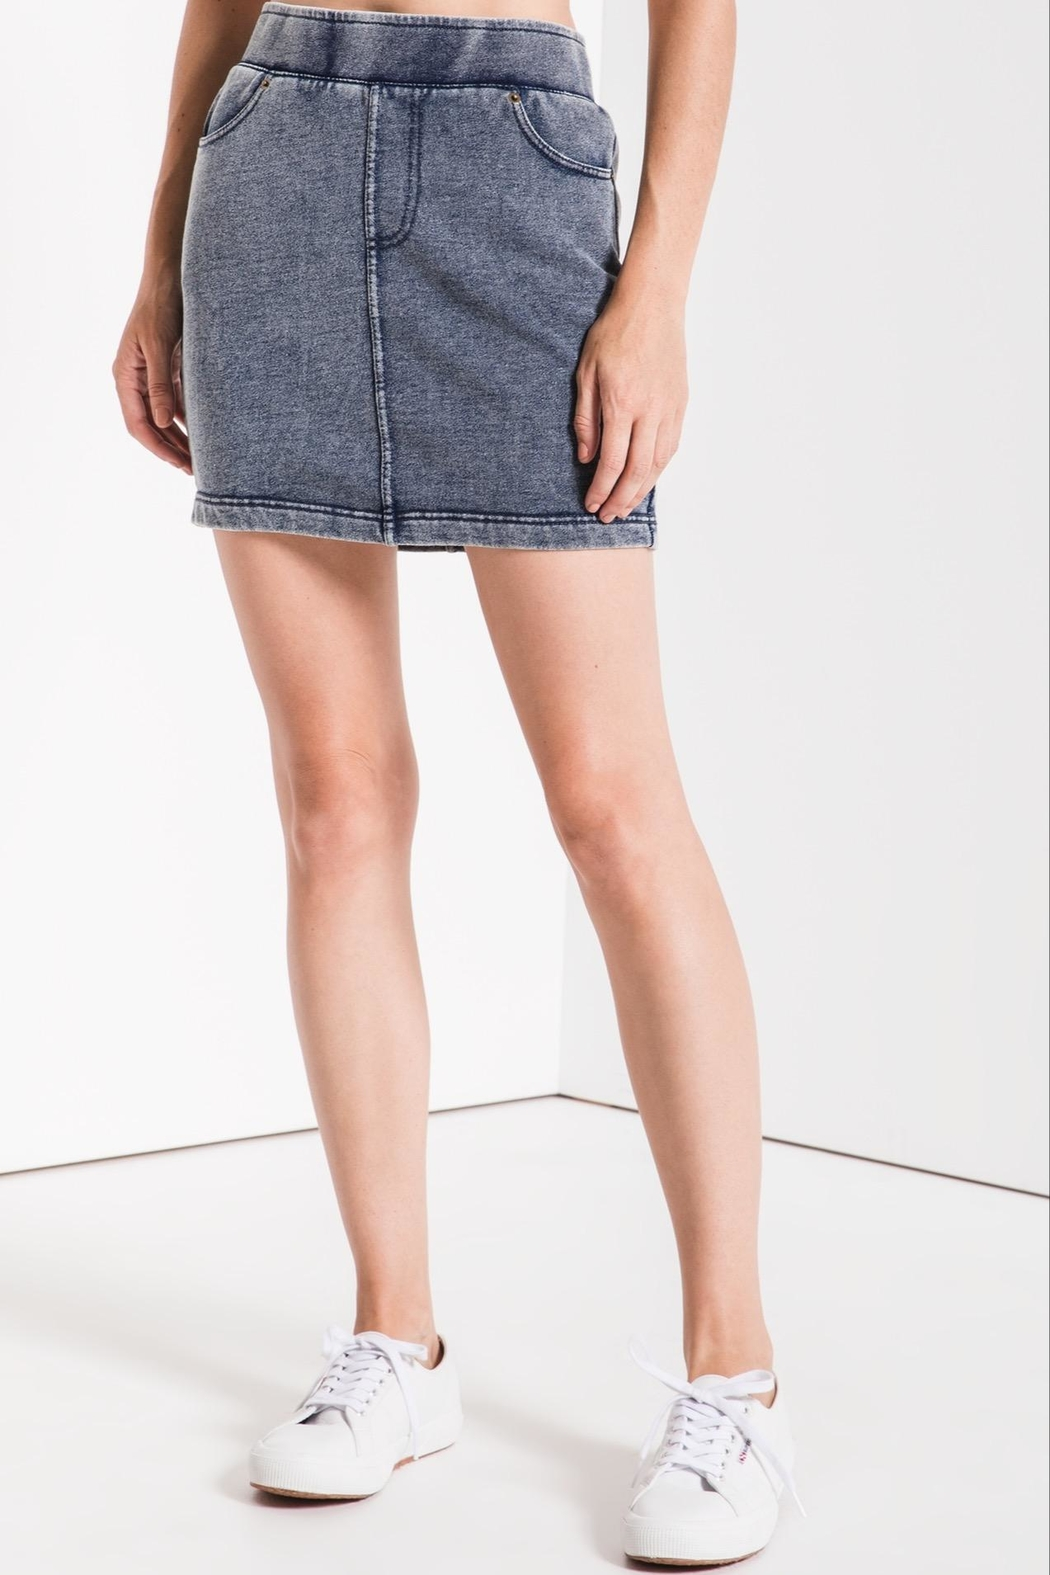 z supply Knit Denim Skirt - Front Cropped Image